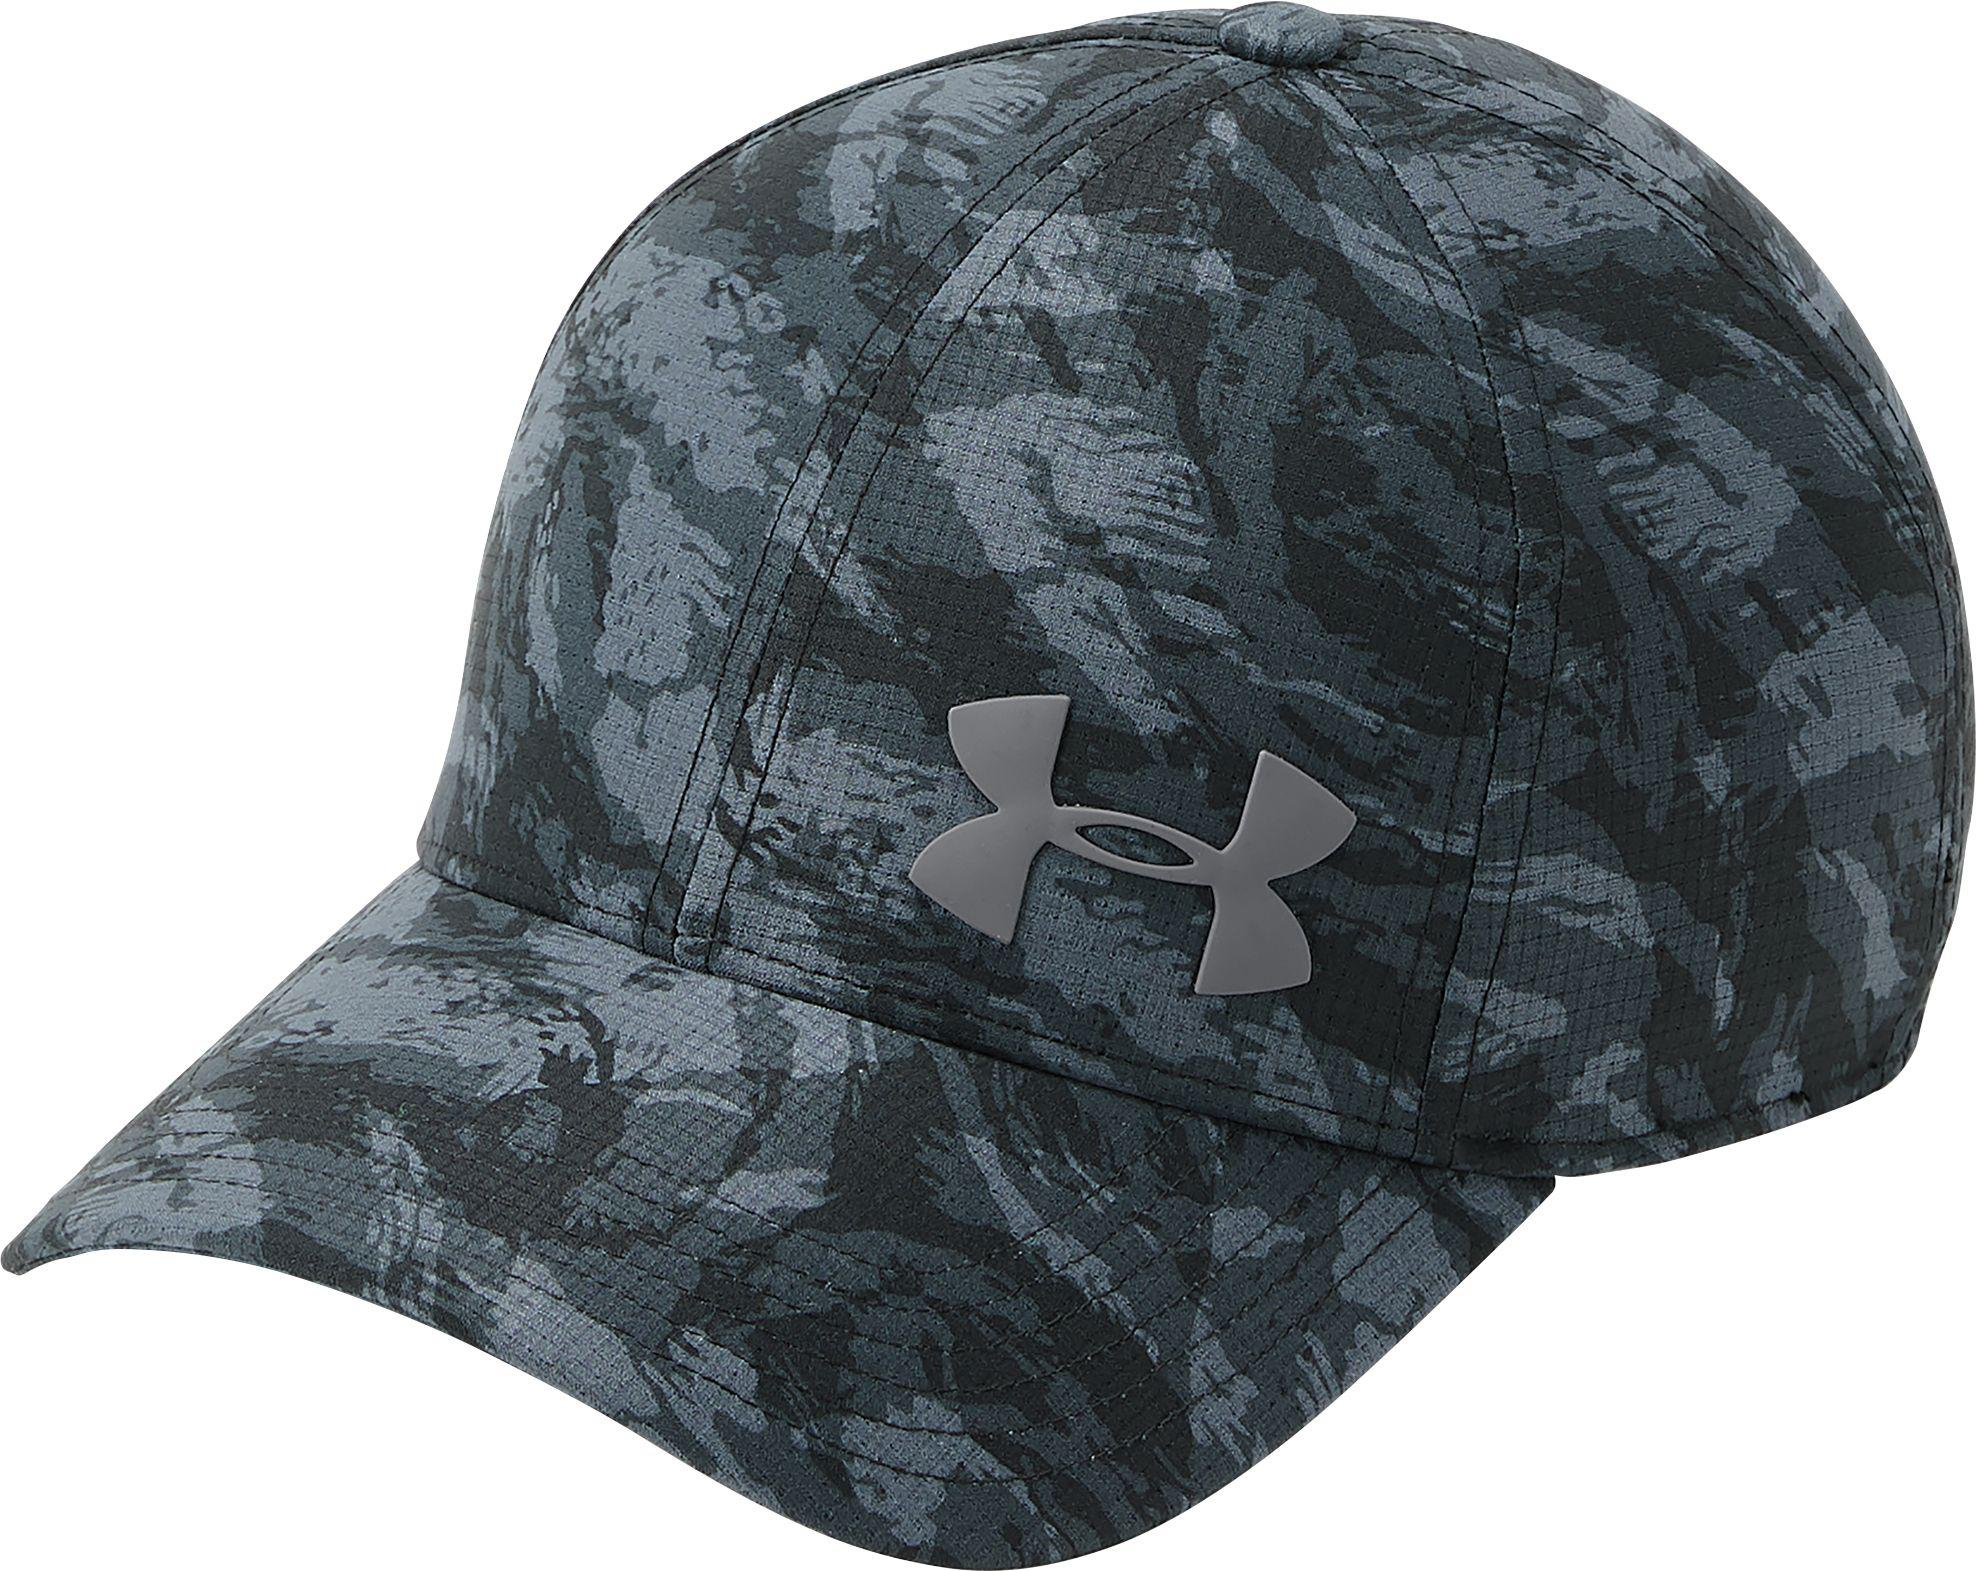 cc39a197c6f Lyst - Under Armour Airvent Core Hat in Black for Men